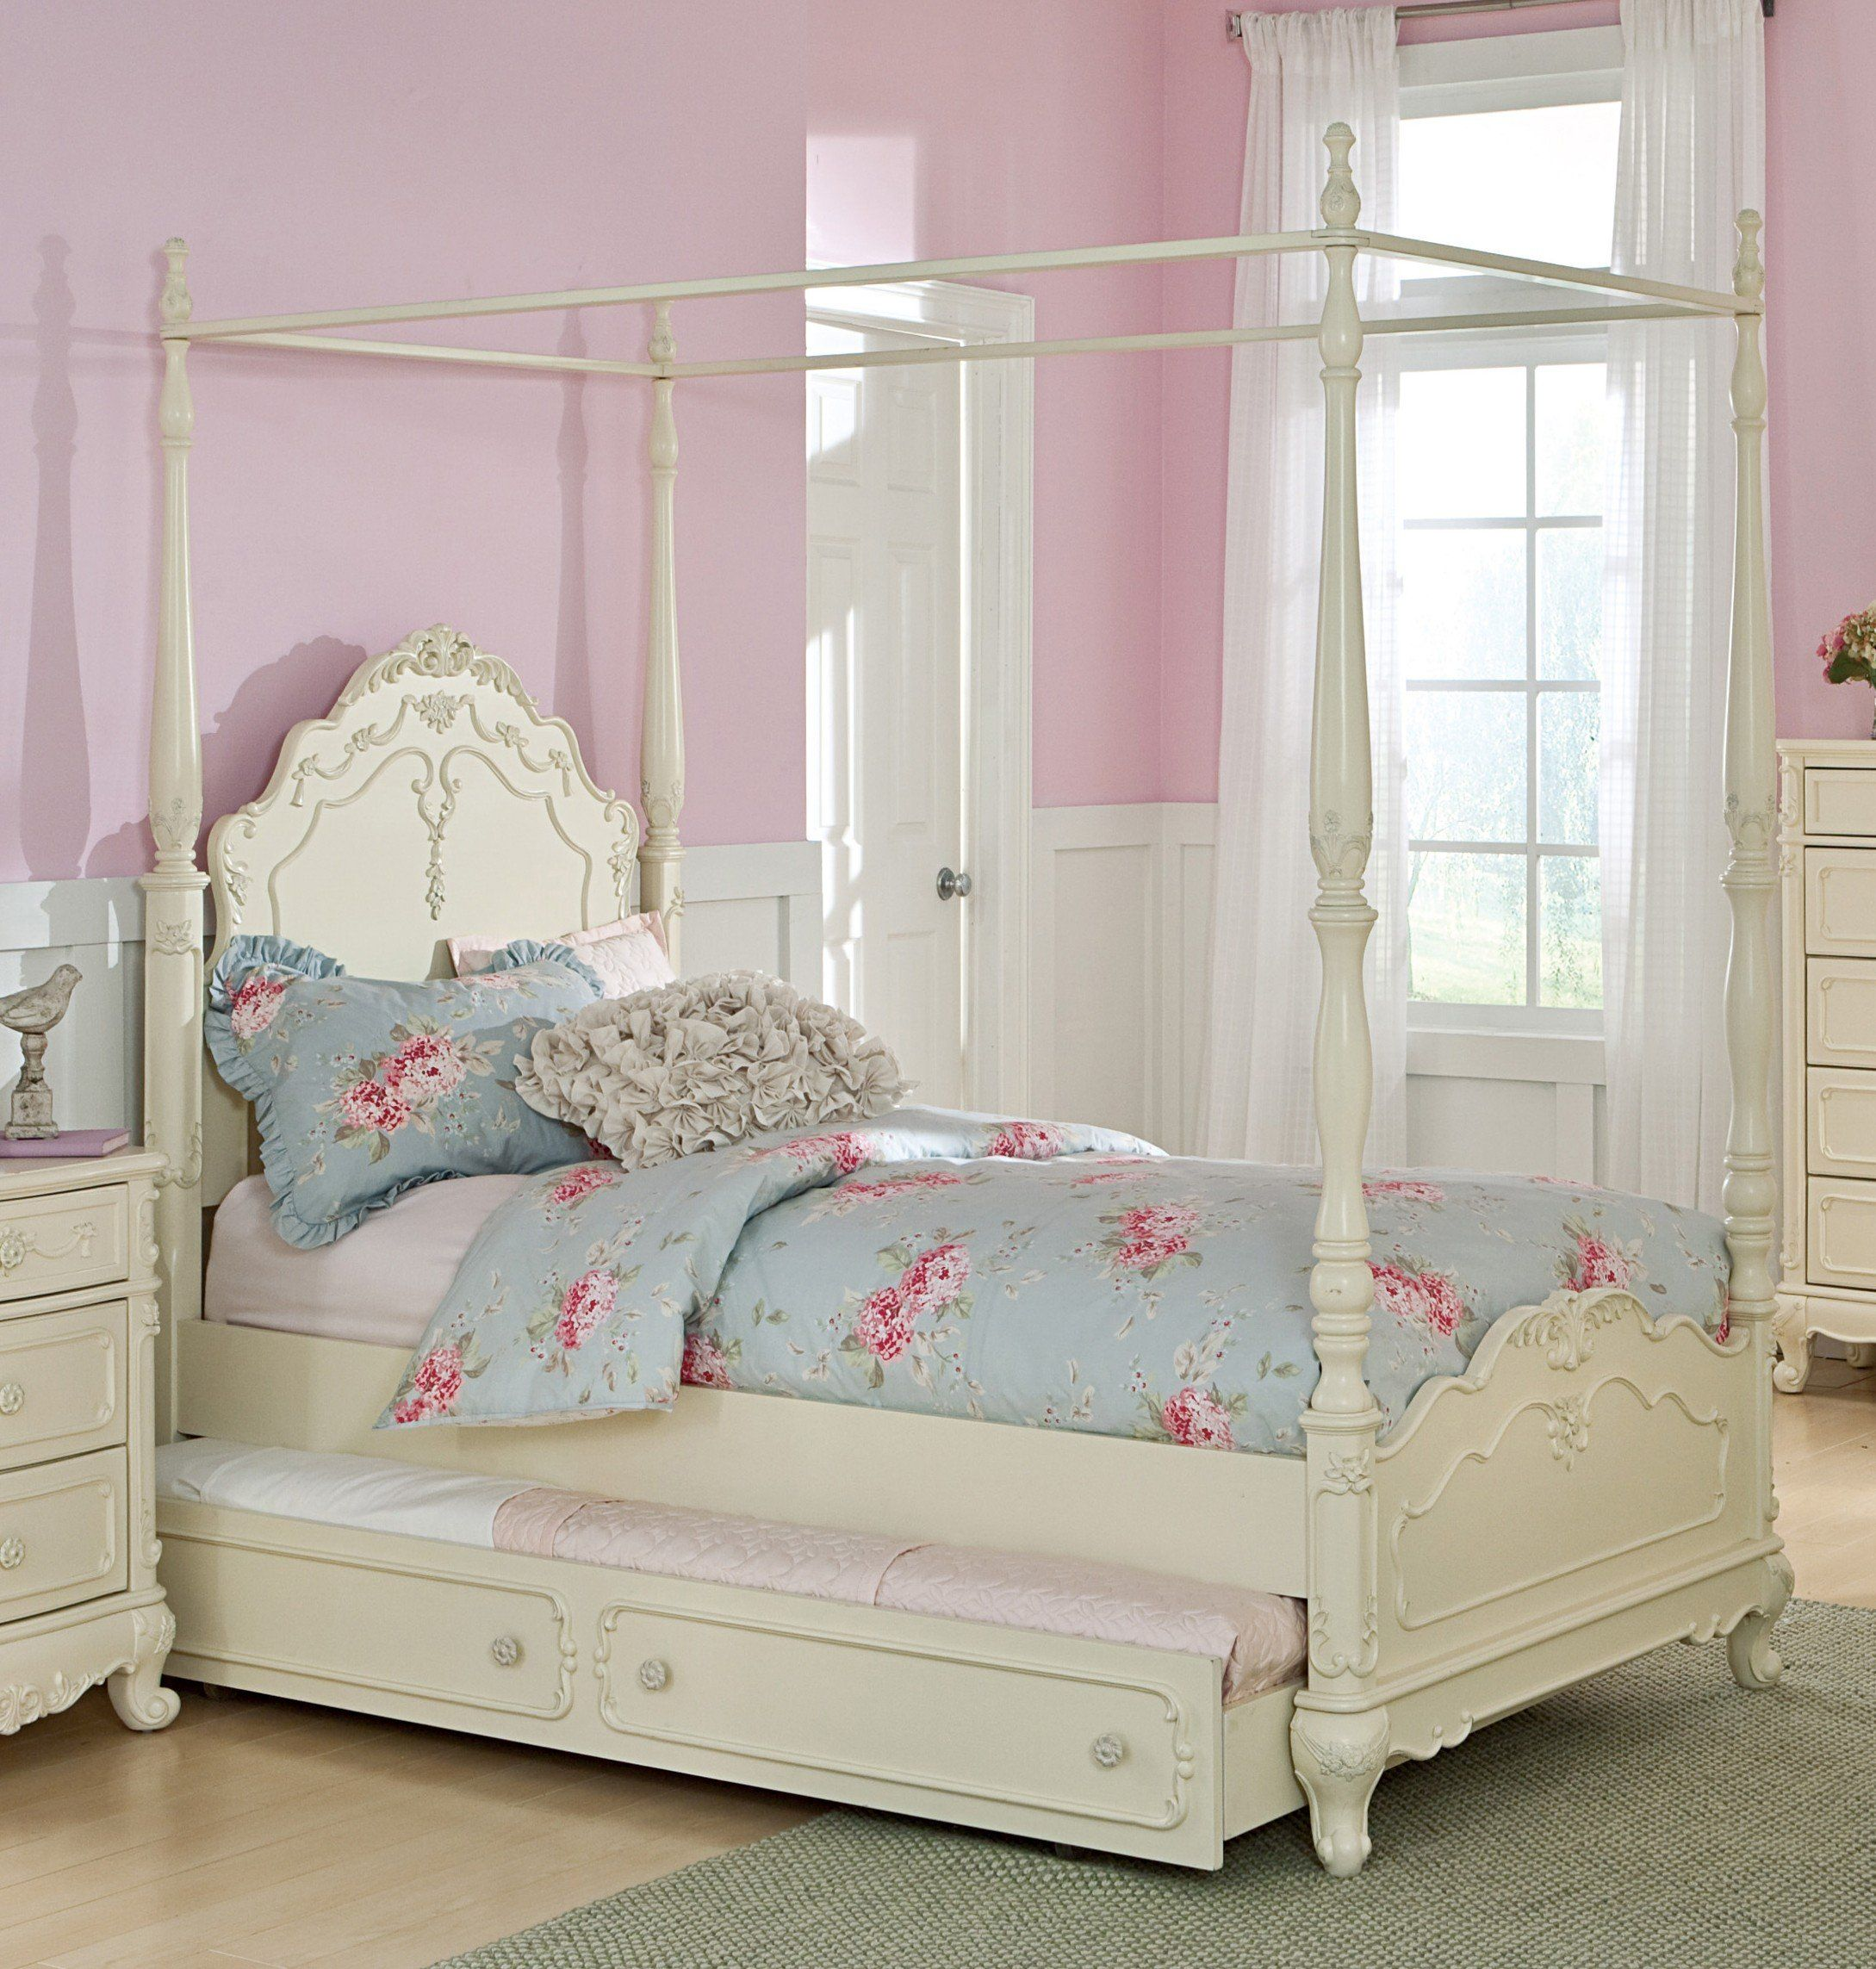 - Homelegance 1386TPP-1 Ecru White Wood Girls Twin Canopy Bed